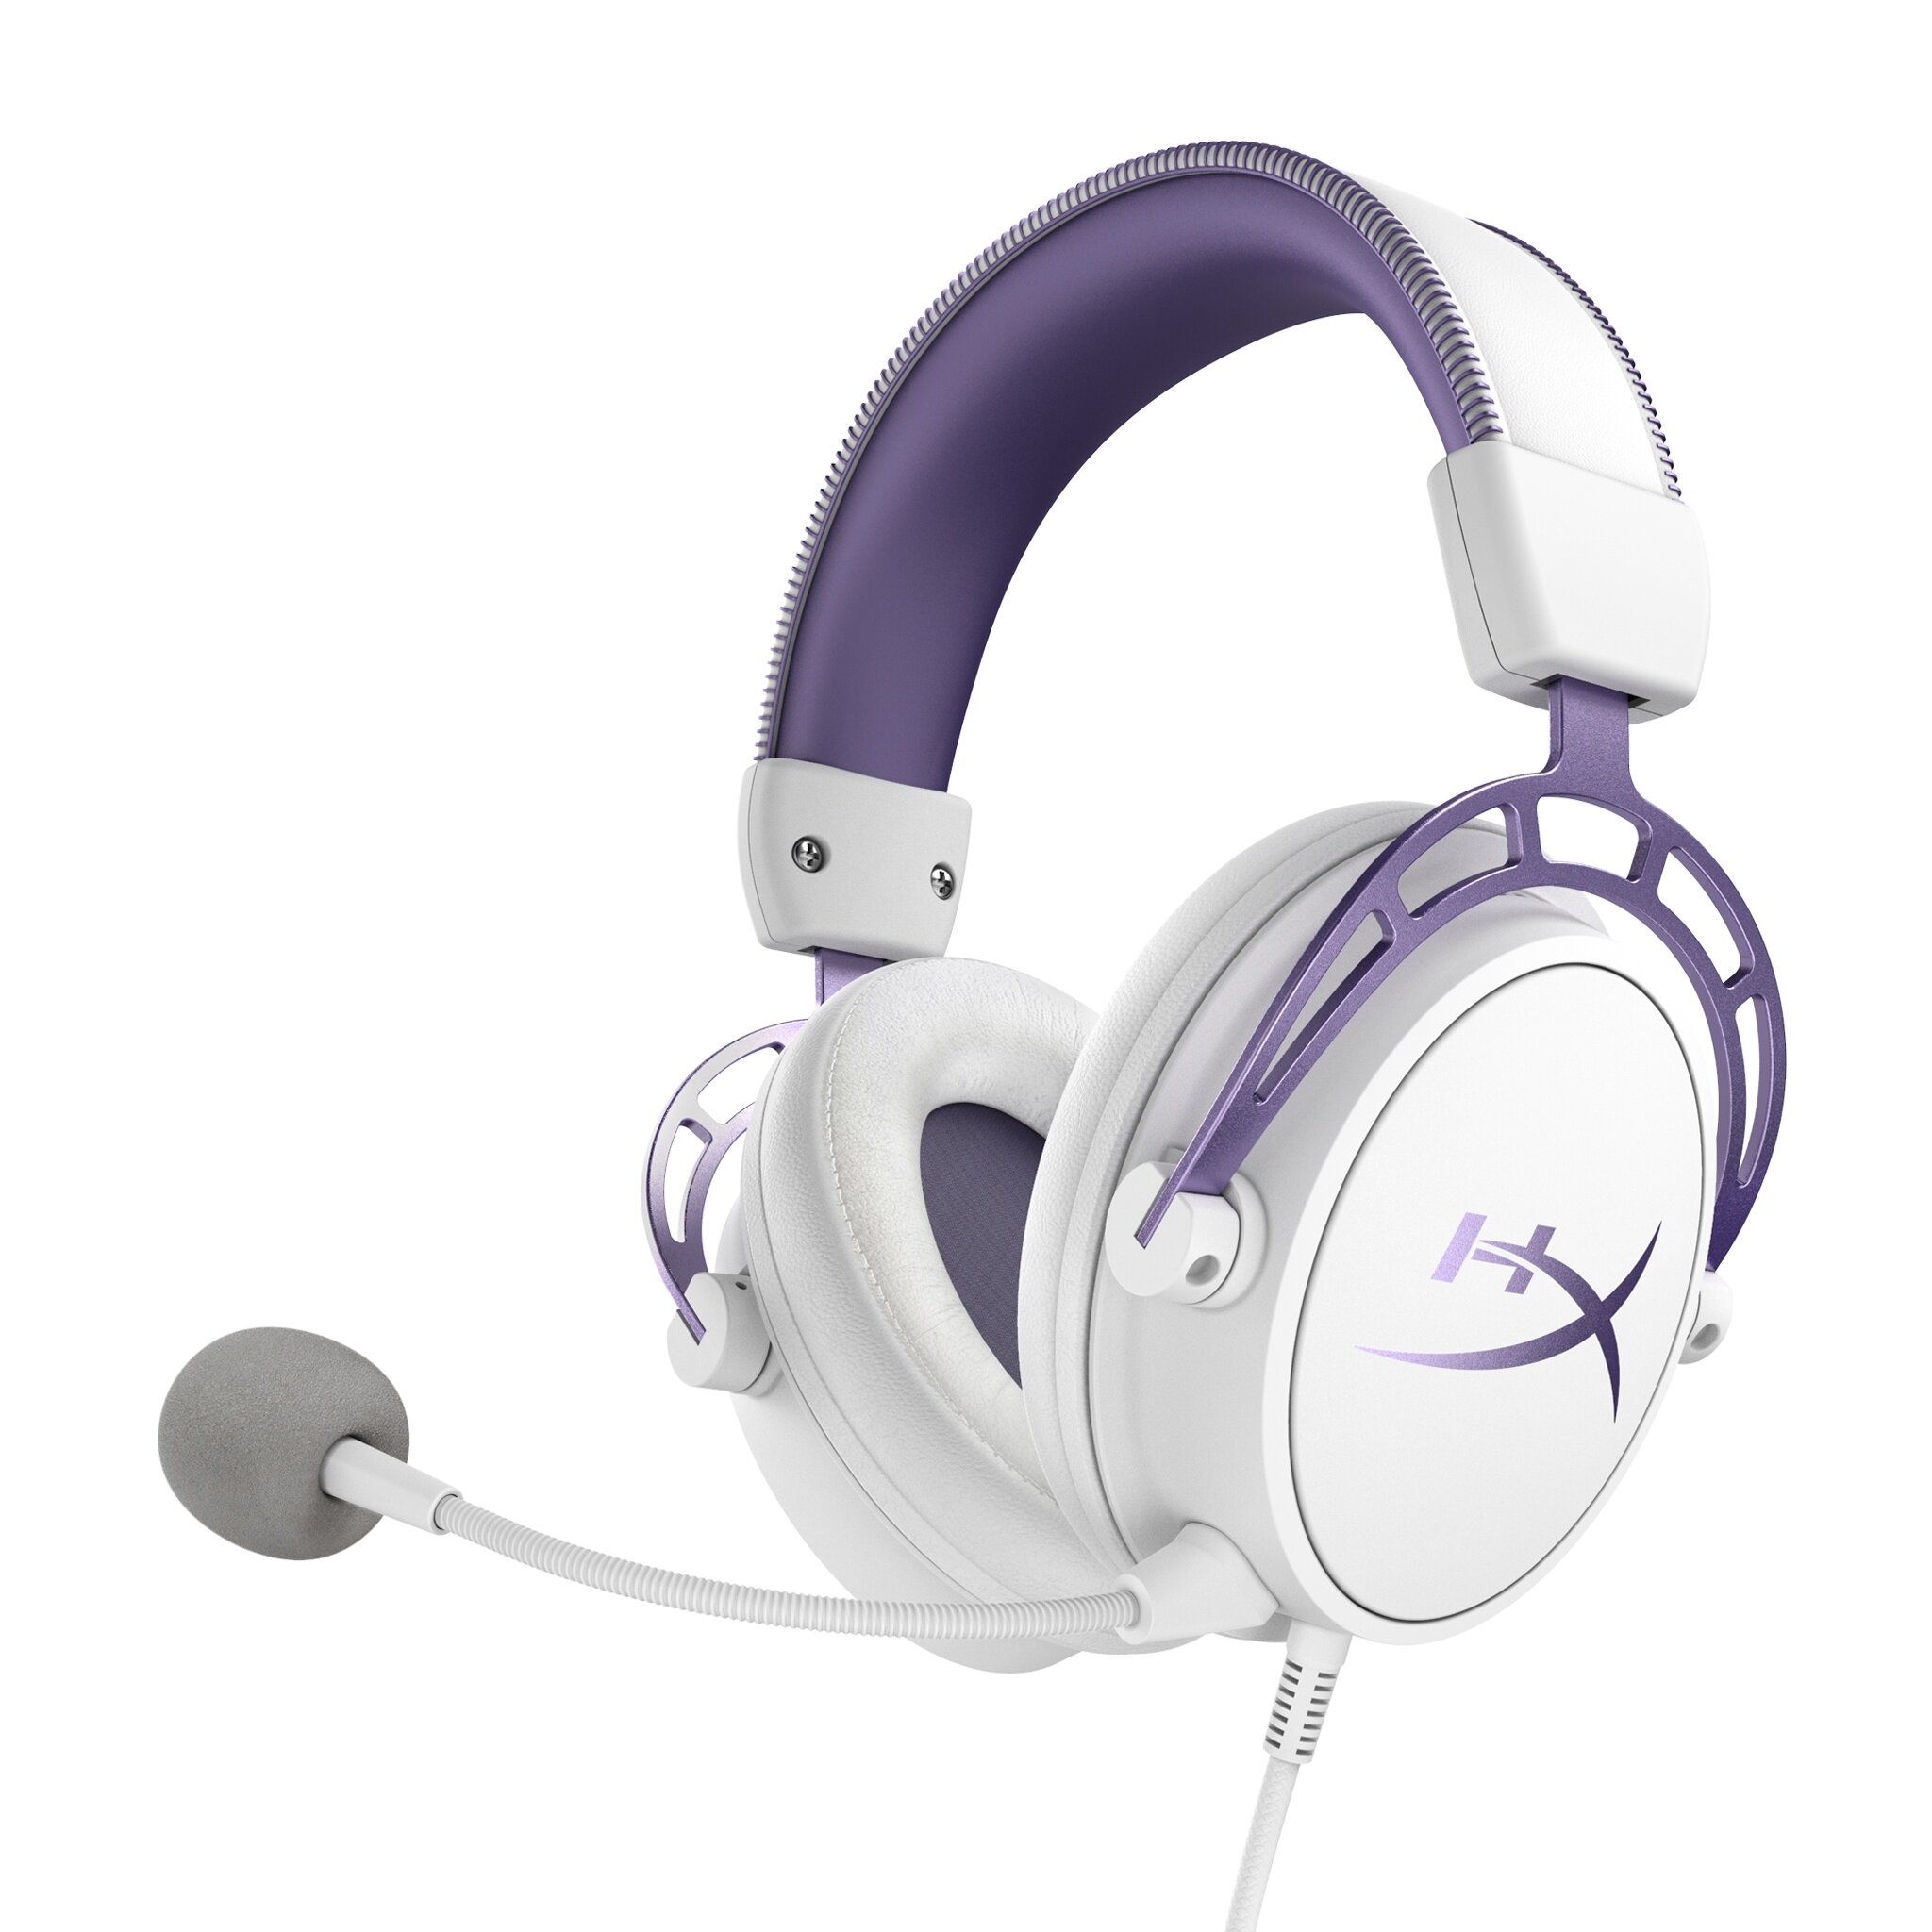 Hyper-X Wired Gaming Headset Cloud Alpha with 3.5mm Audio Jack, Datachable Noise-Cancelling Microphone, 50MM Driver, In-Line Audio Control, Aluminum Hinge